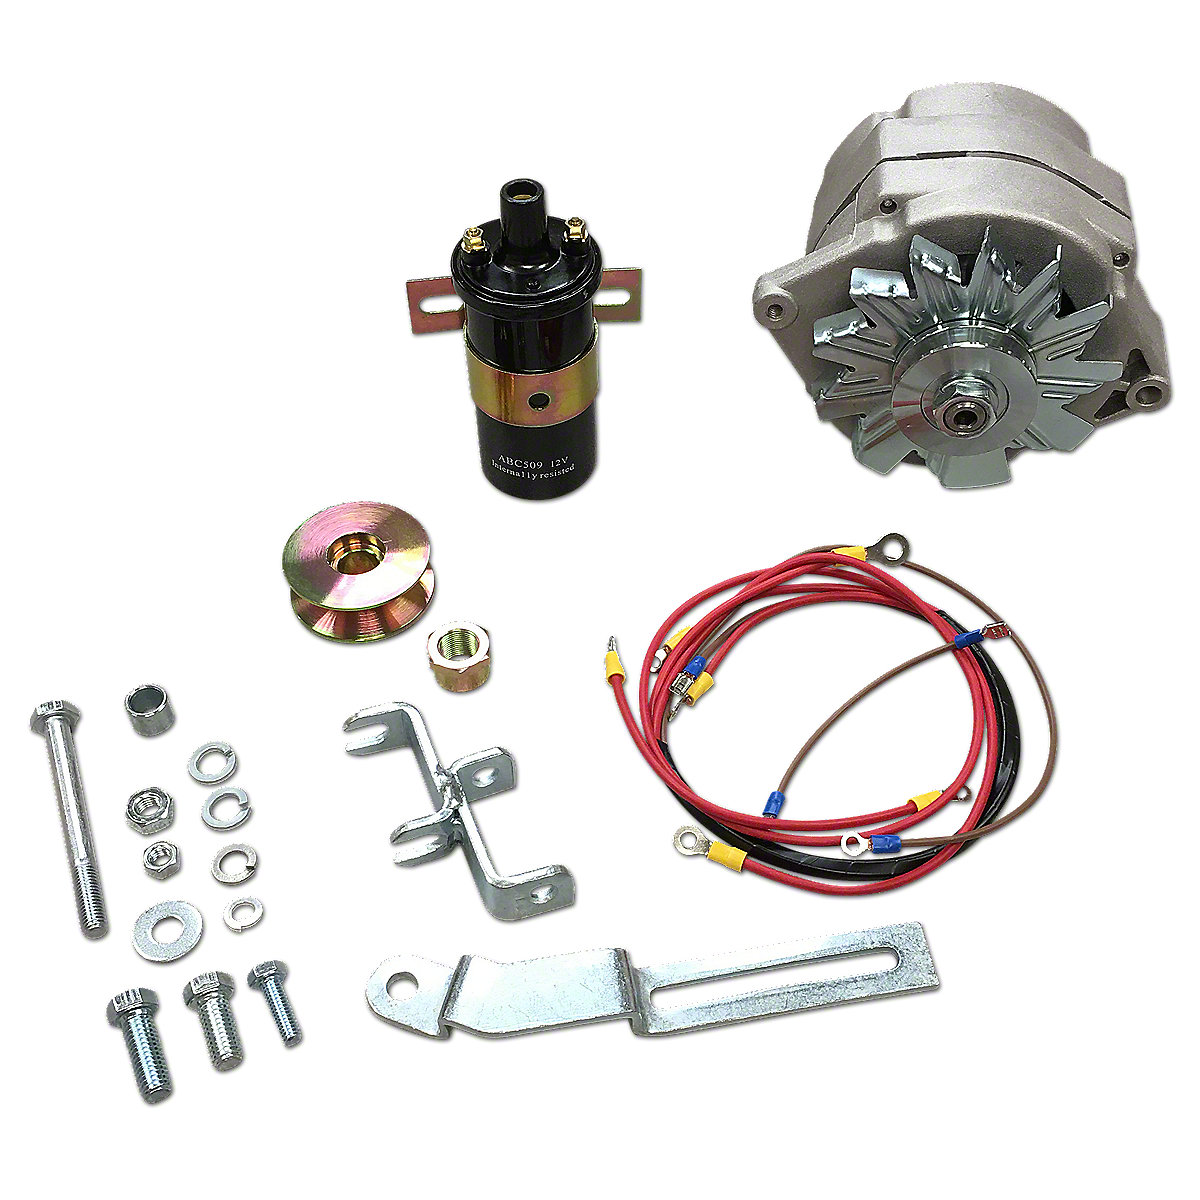 MFS3812 Alternator Conversion Kit